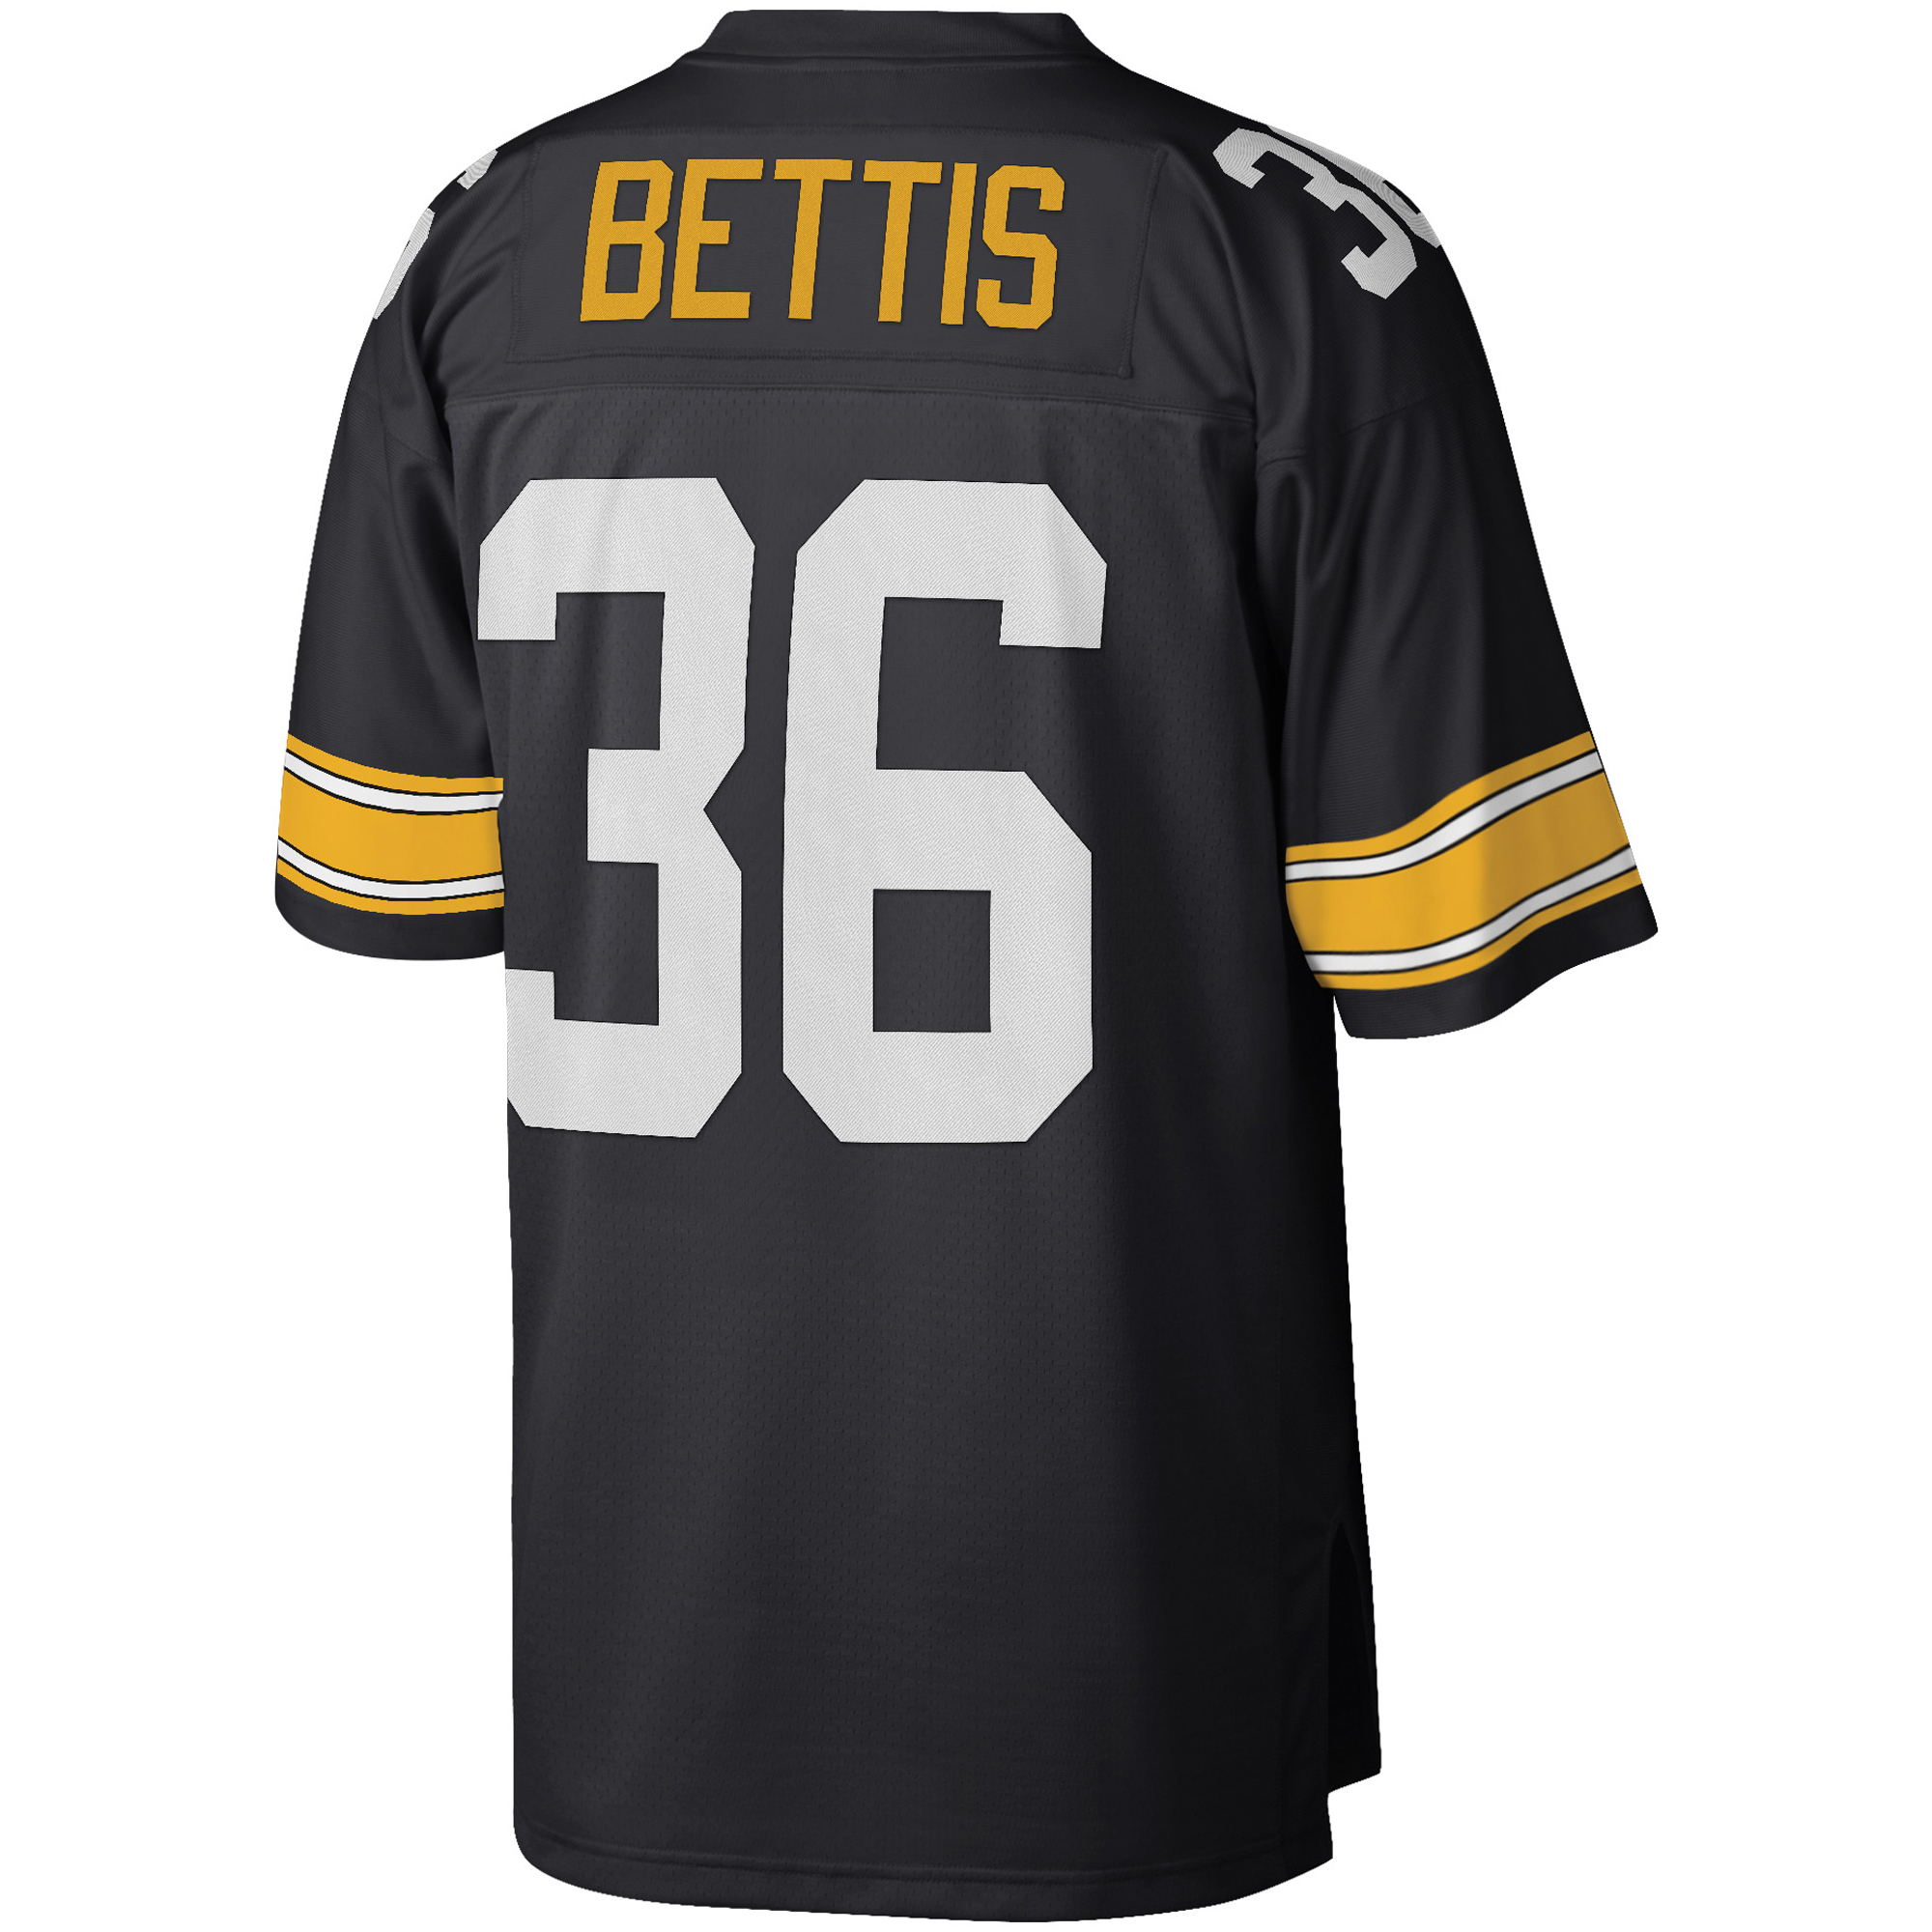 more photos 3d1cb 48179 Jerome Bettis Pittsburgh Steelers Mitchell & Ness Retired Player Legacy  Replica Jersey - Black